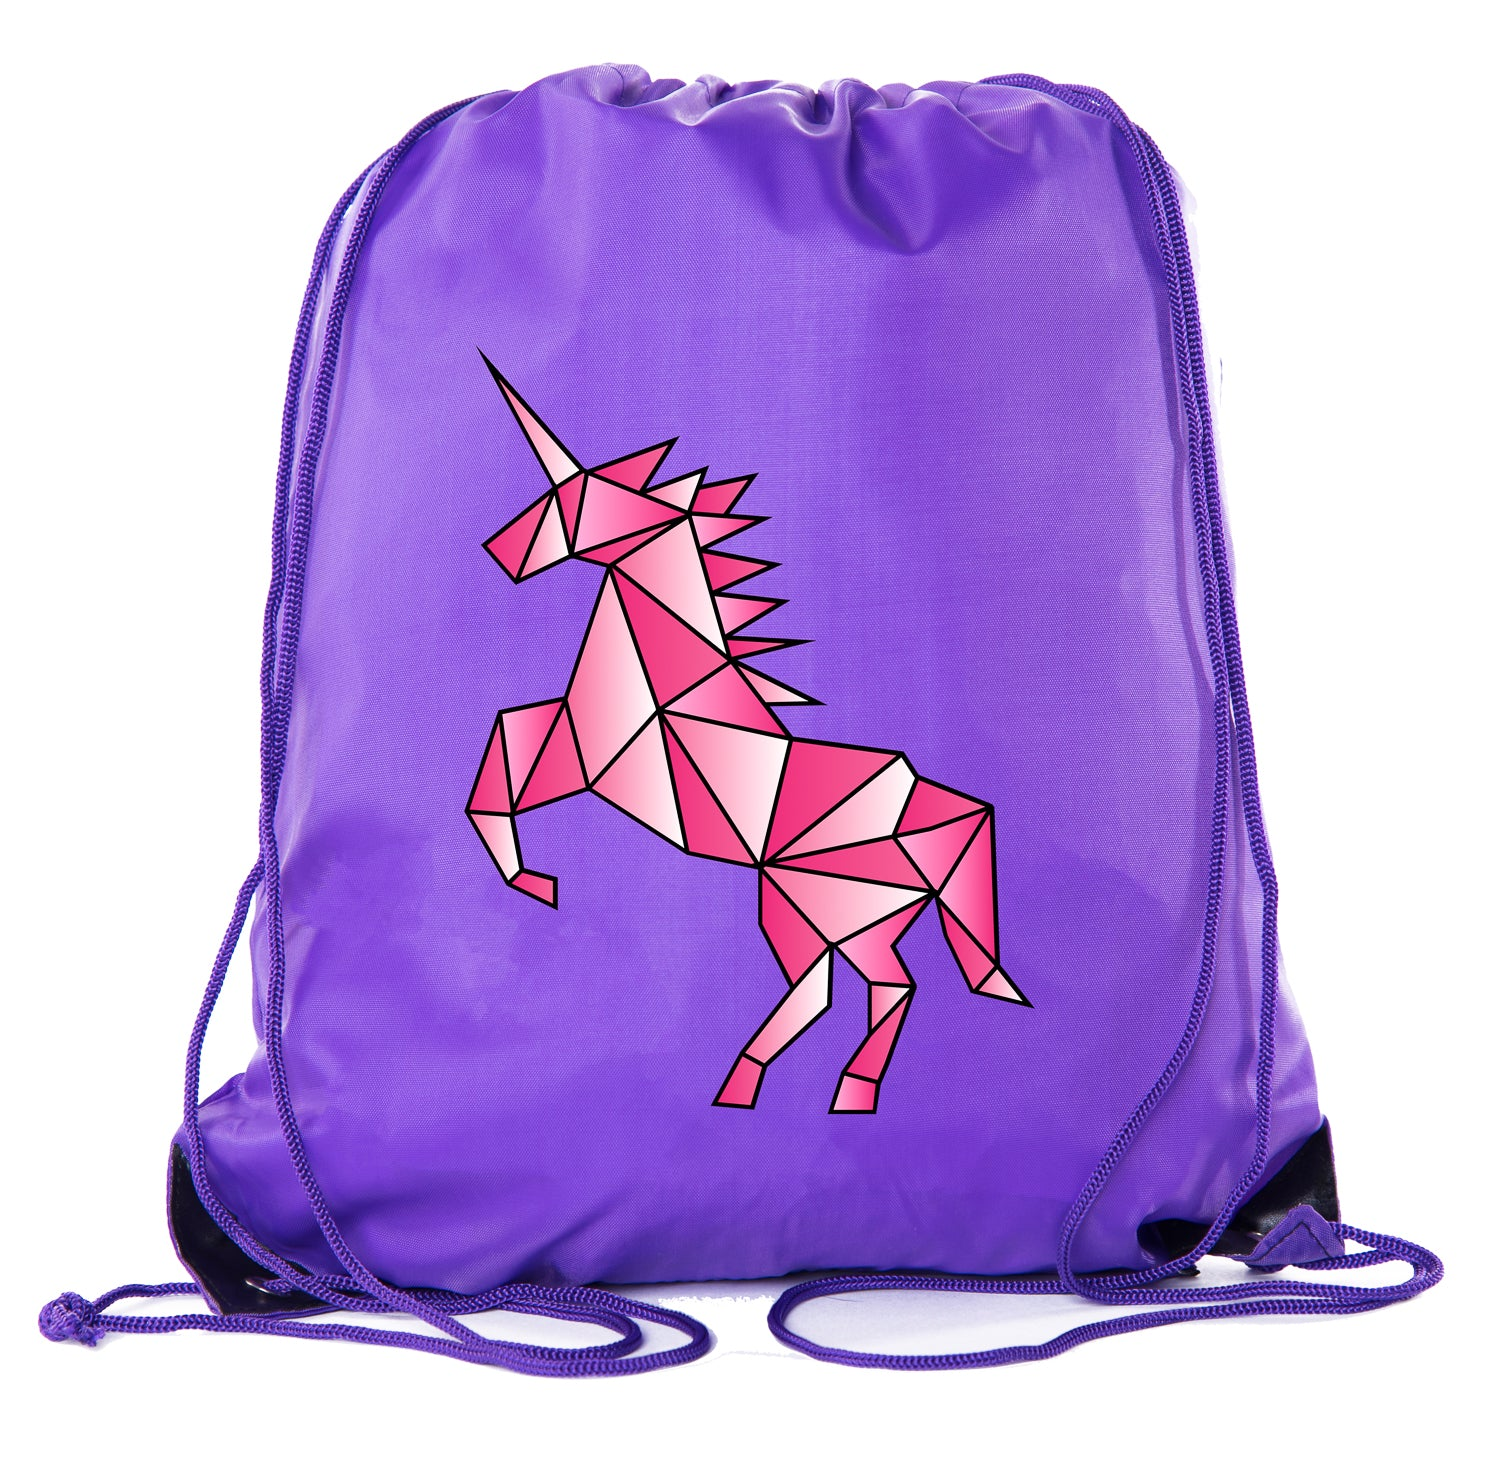 Accessory - Unicorn Drawstring Bags Unicorn Treat Bags For Birthday Gift Bags & Baby Showers - Unicorn